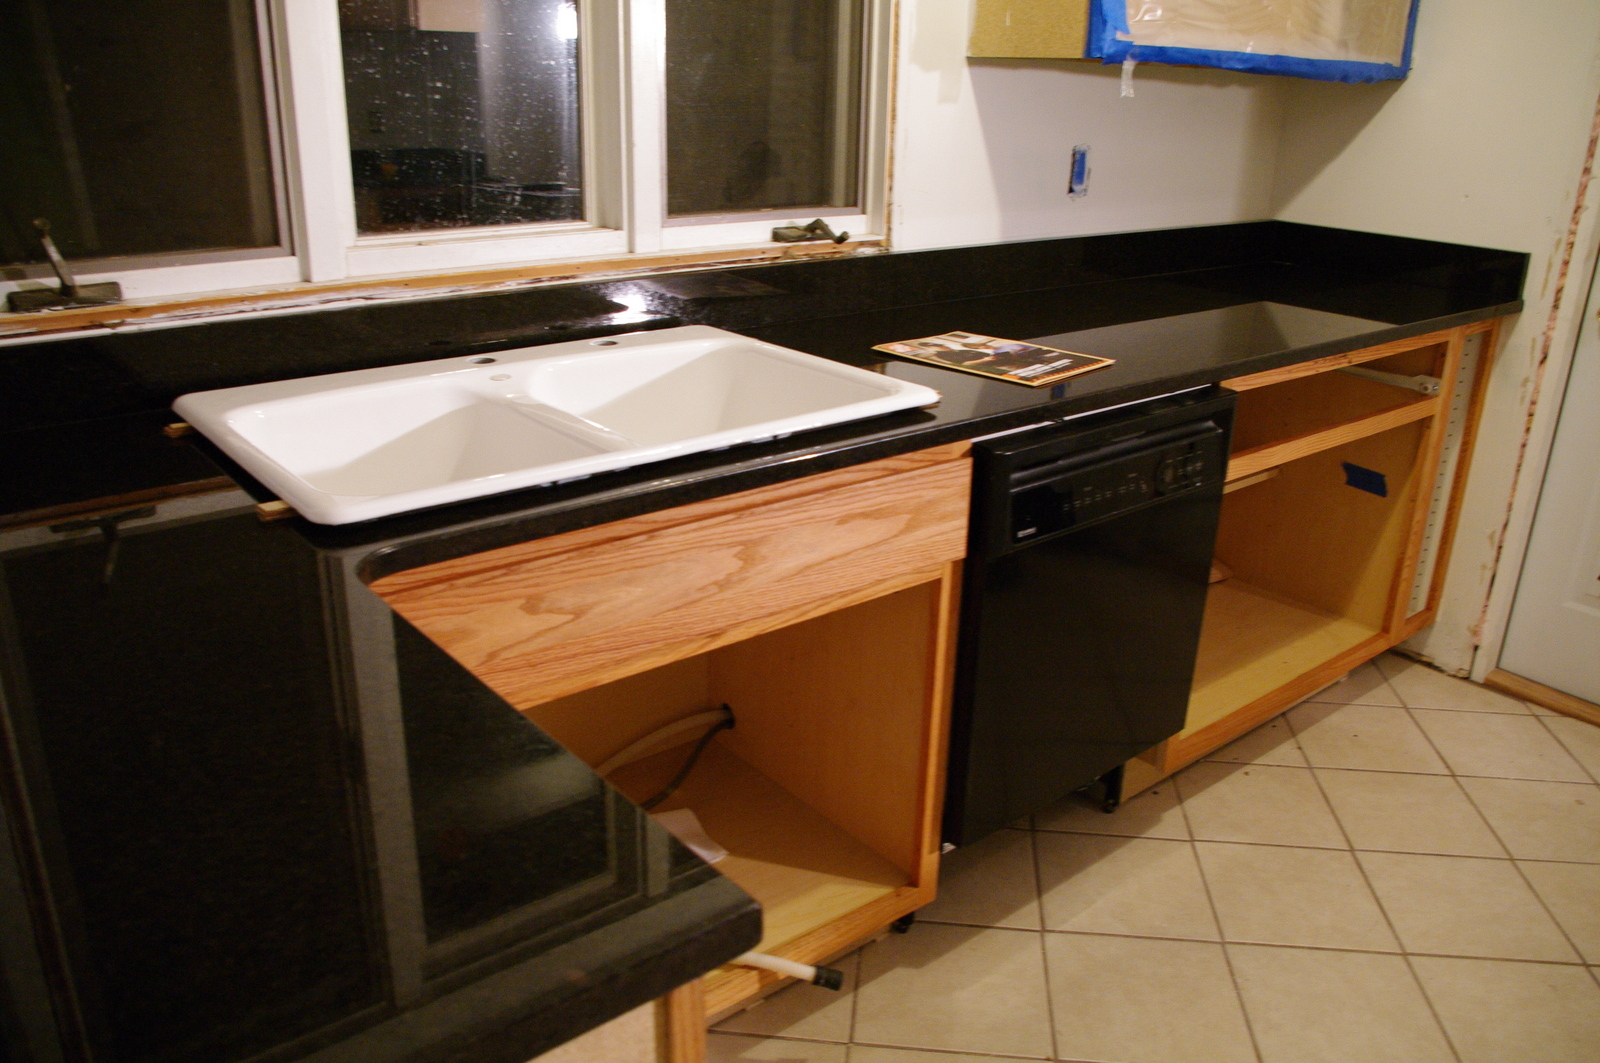 Preparing Cabinets For Granite Countertops The Prairie Street Craftsman New Countertops The Black